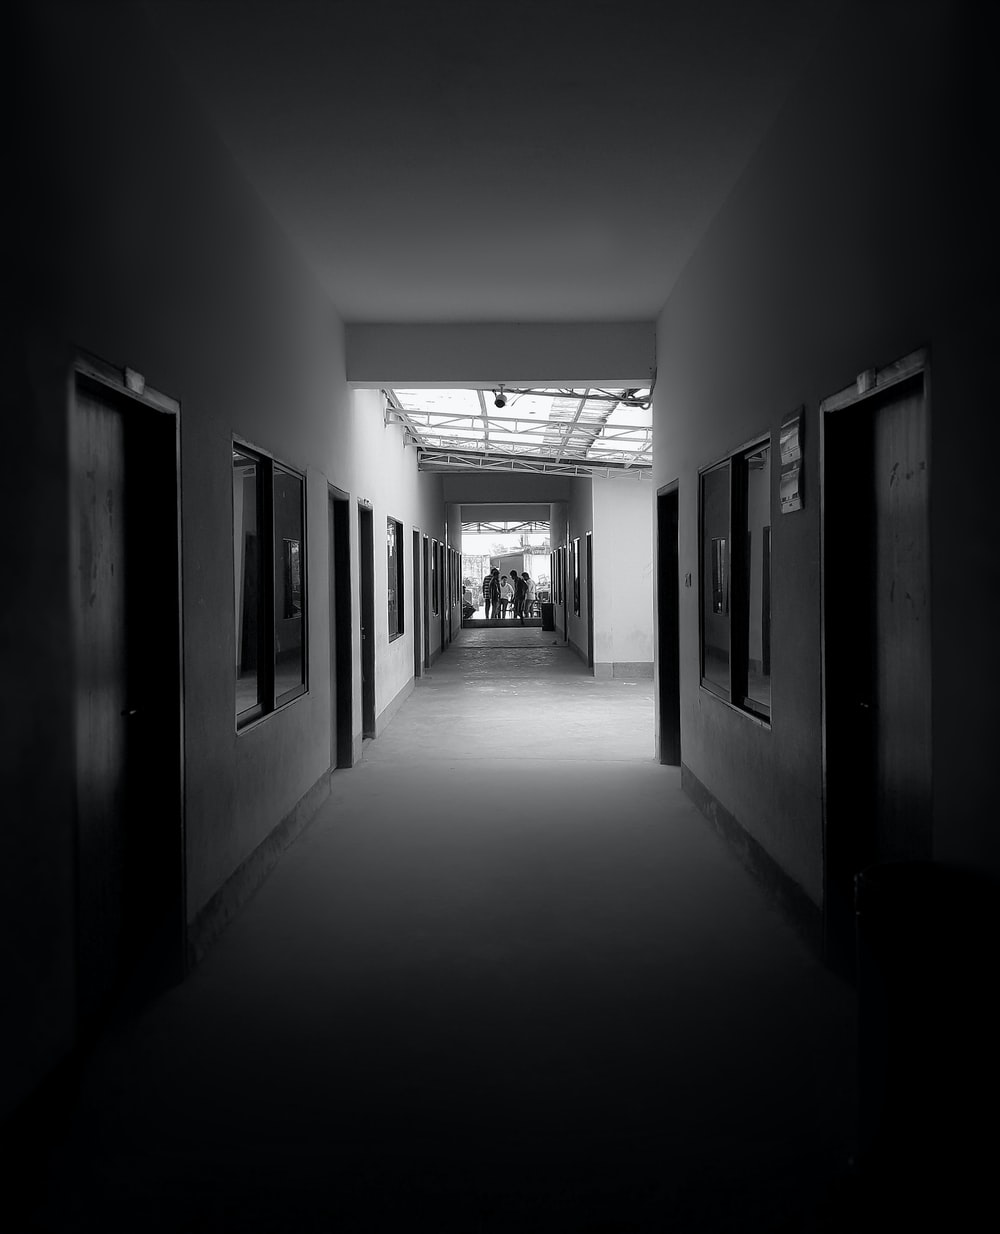 grayscale photography of pathway between rooms